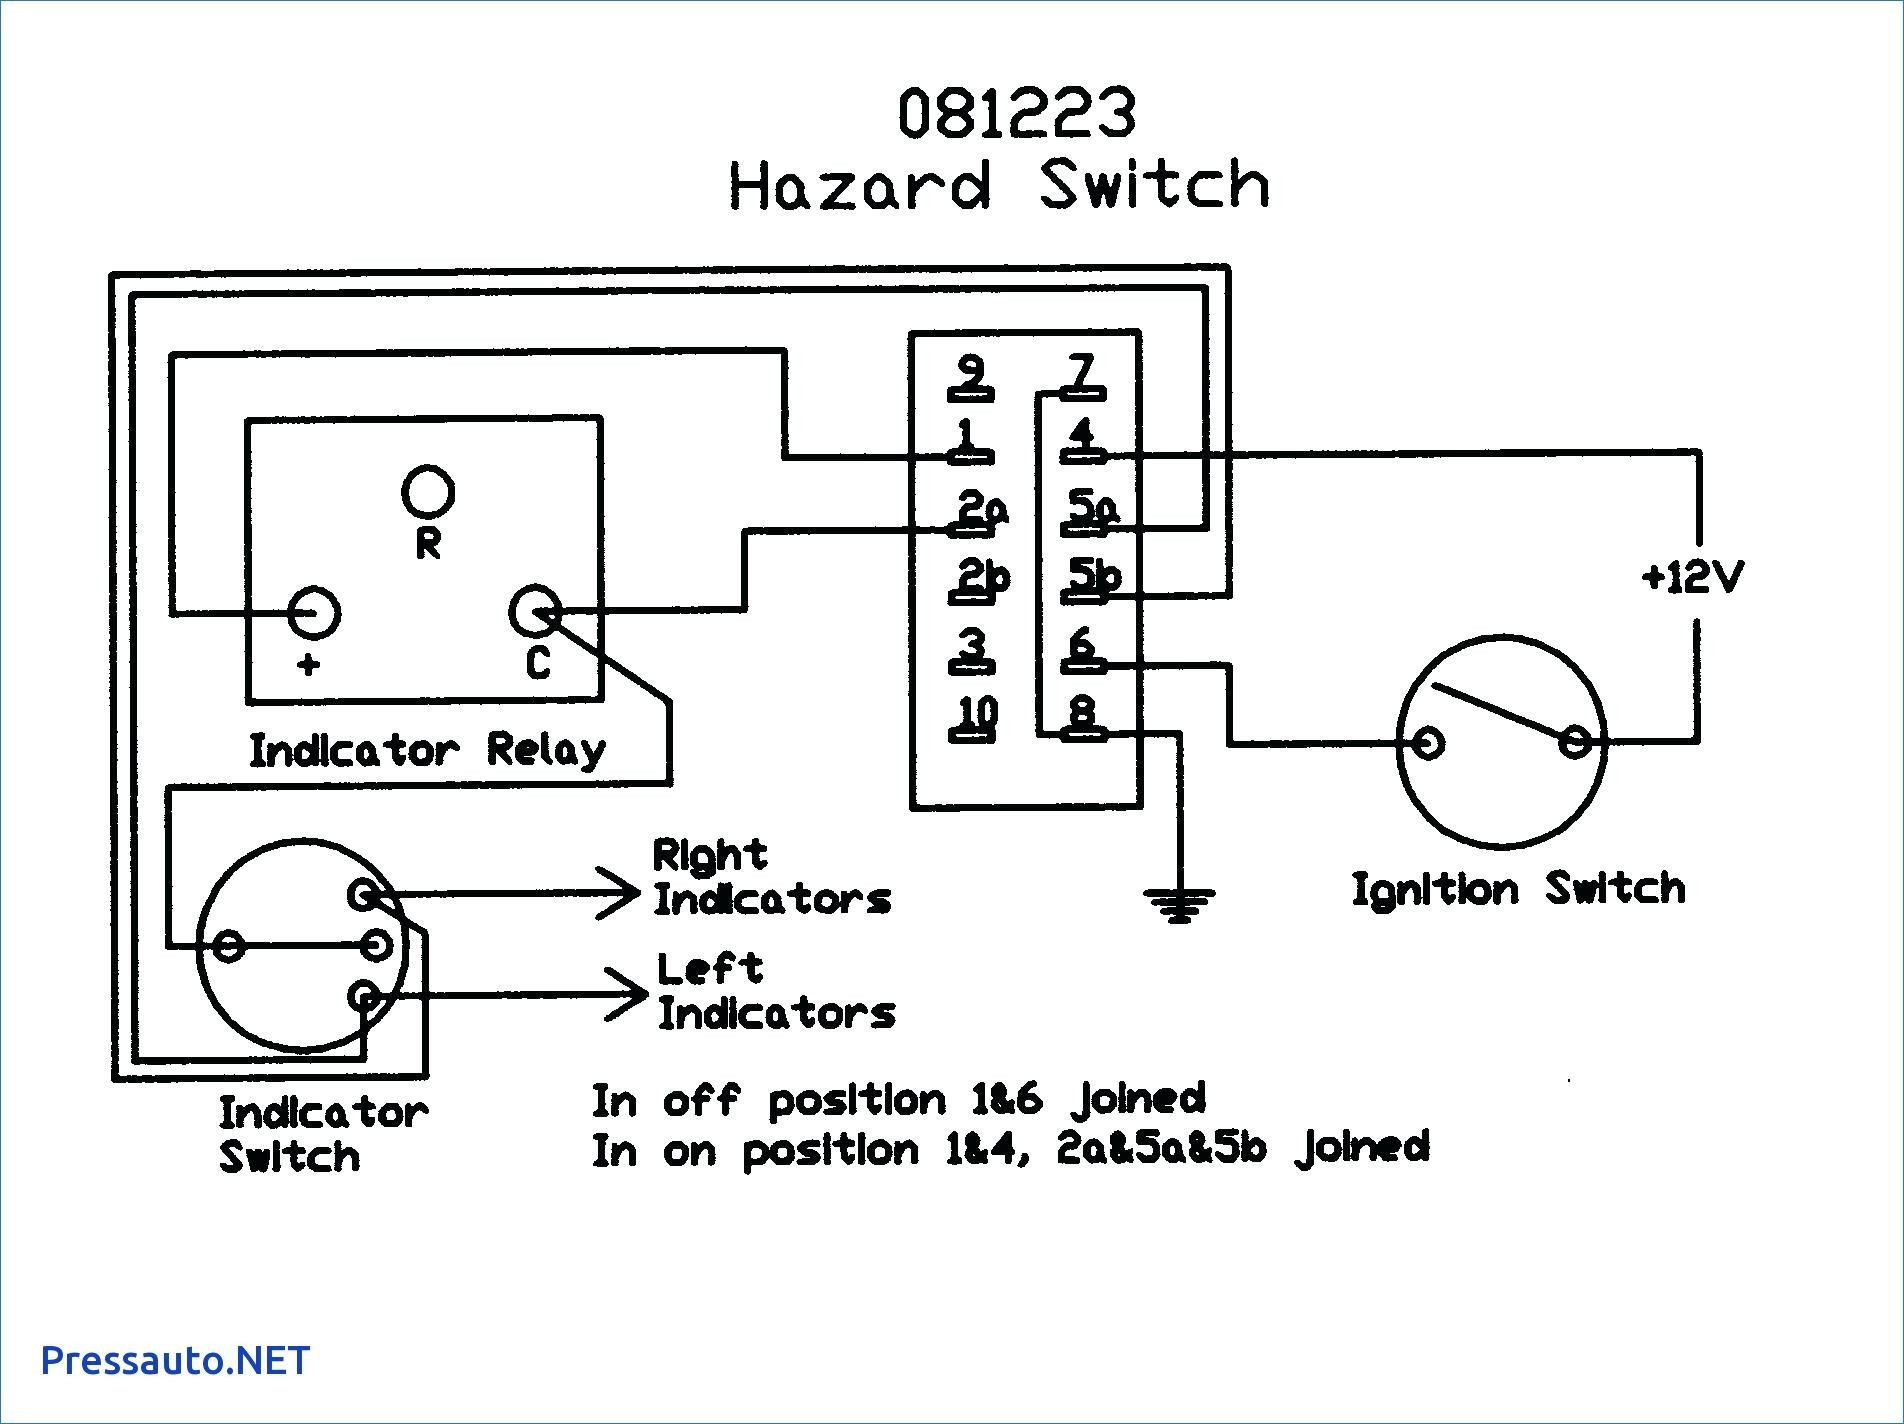 Badland Wireless Winch Remote Control Wiring Diagram | Wiring ... on warn wireless remote wiring diagram, wireless winch remote wiring diagram, rf remote receiver diagram, switch circuit diagram, arduino wireless diagram, badland winches wireless remote diagram, badland winch wireless remote control, badlands winch diagram, badland winches wiring, badland atv winches, badland winch mount, badland winch coupons, remote control winch wiring diagram, remote switch wiring diagram, badlands motorcycle diagram, badland winches installation, audio amplifier kit diagram, badland winch parts,